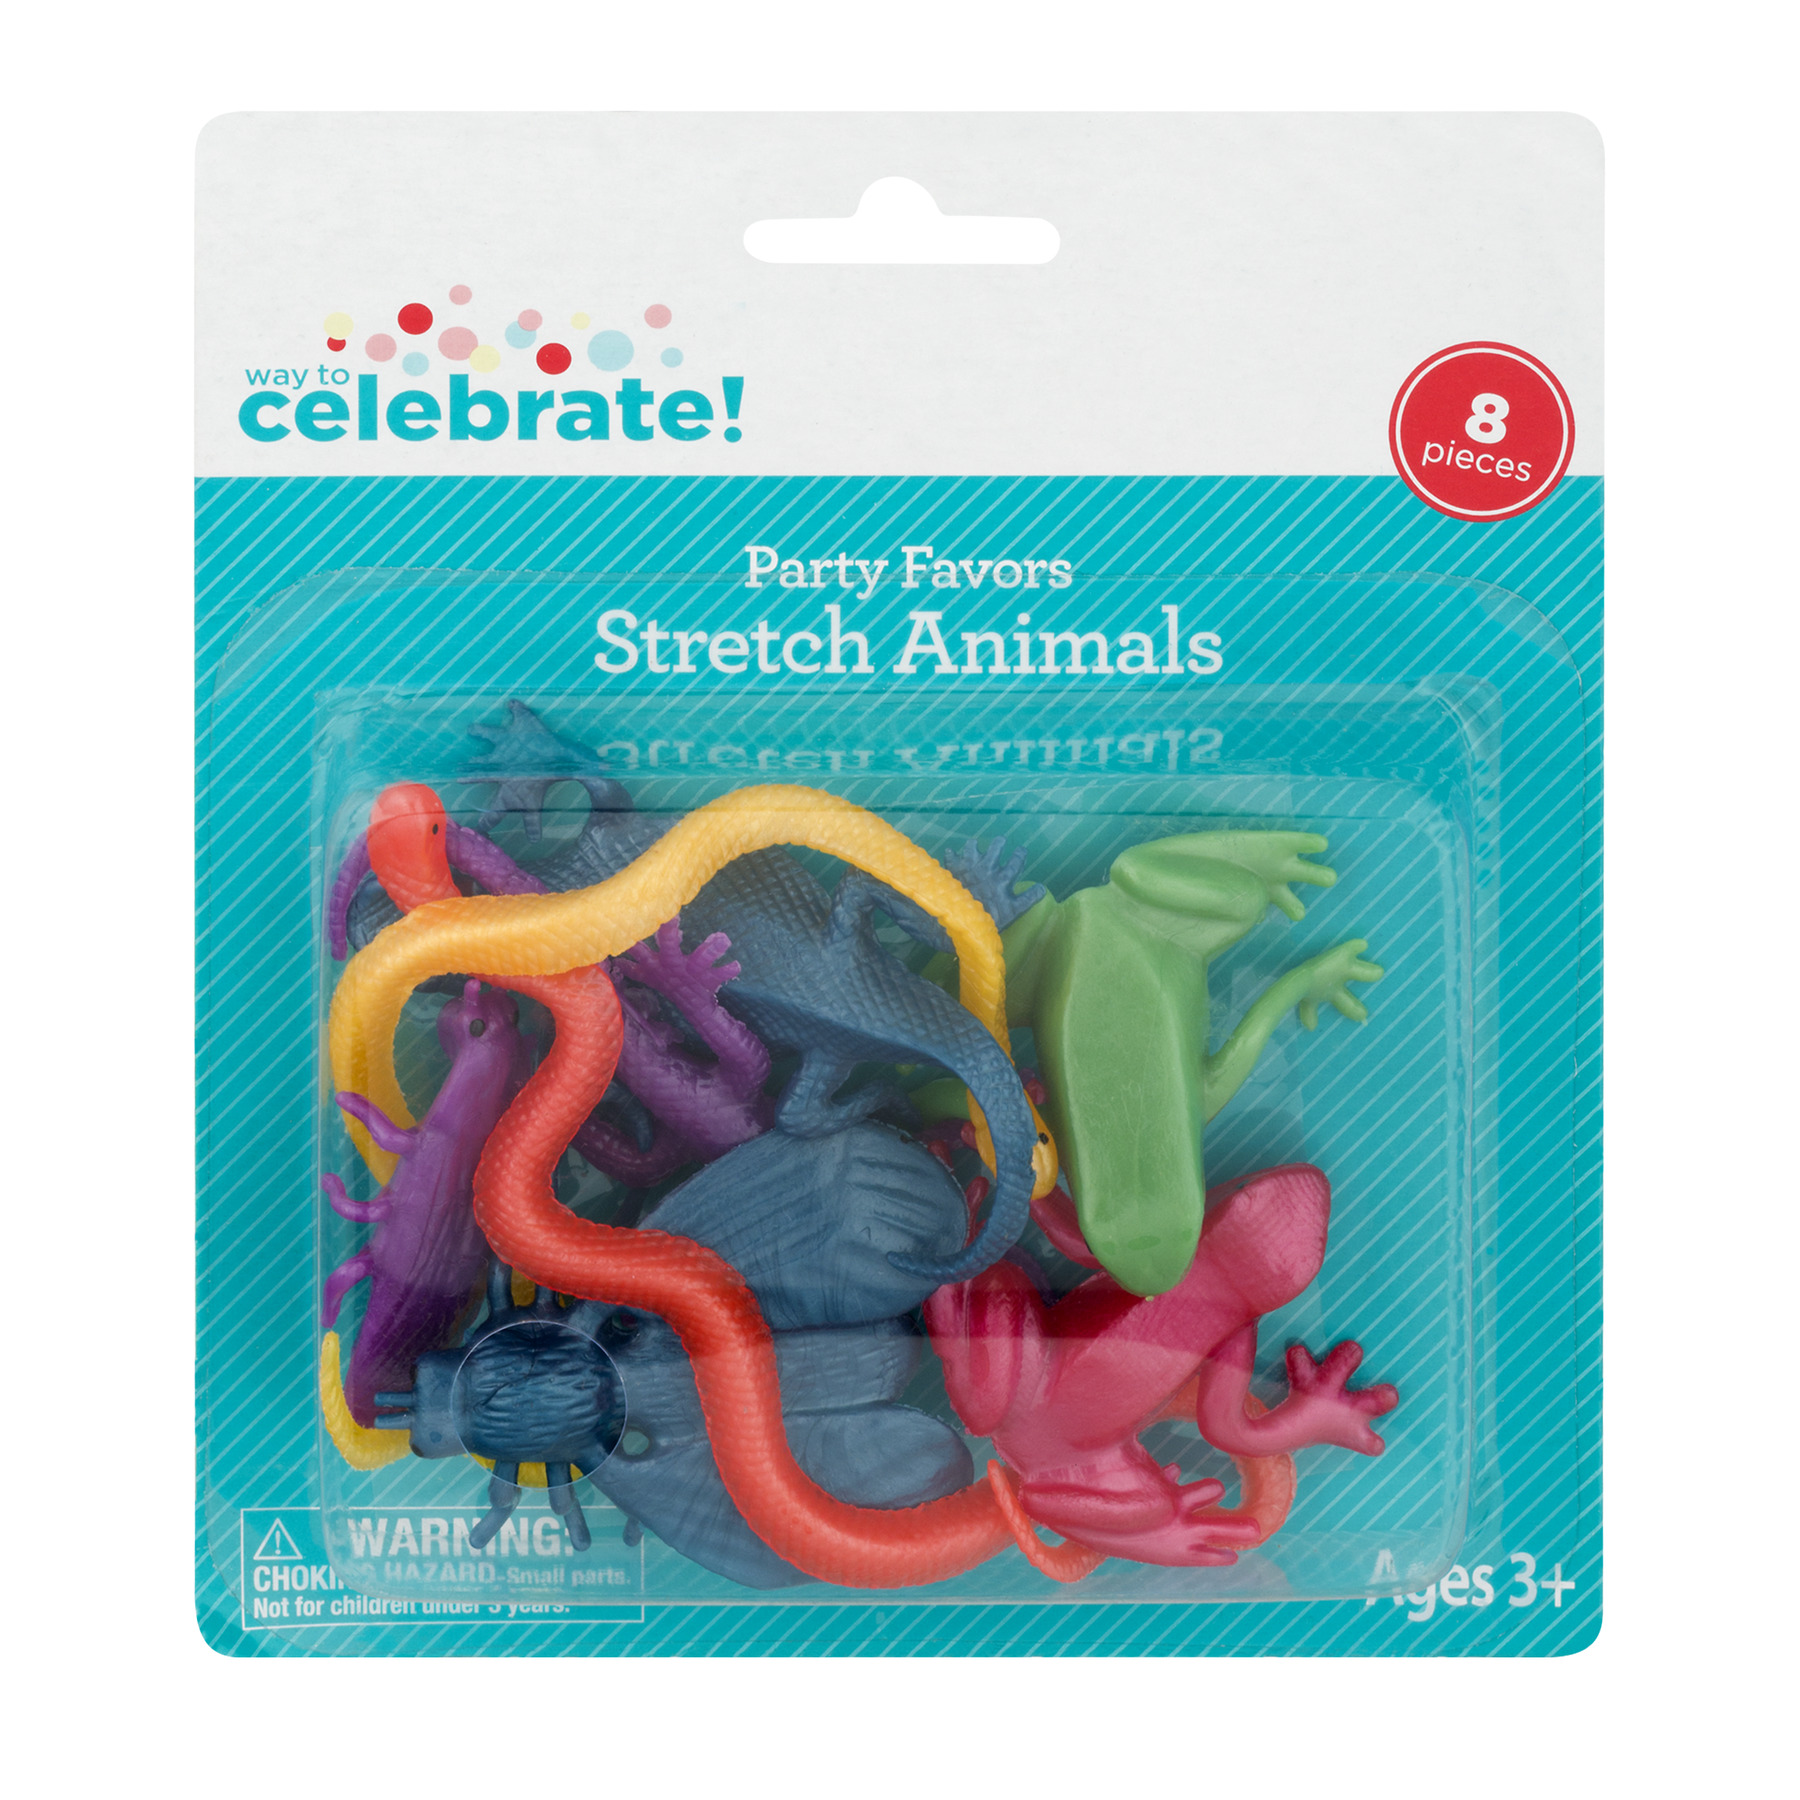 (4 Pack) Way To Celebrate! Party Favors Stretch Animals, 8.0 PIECE(S)